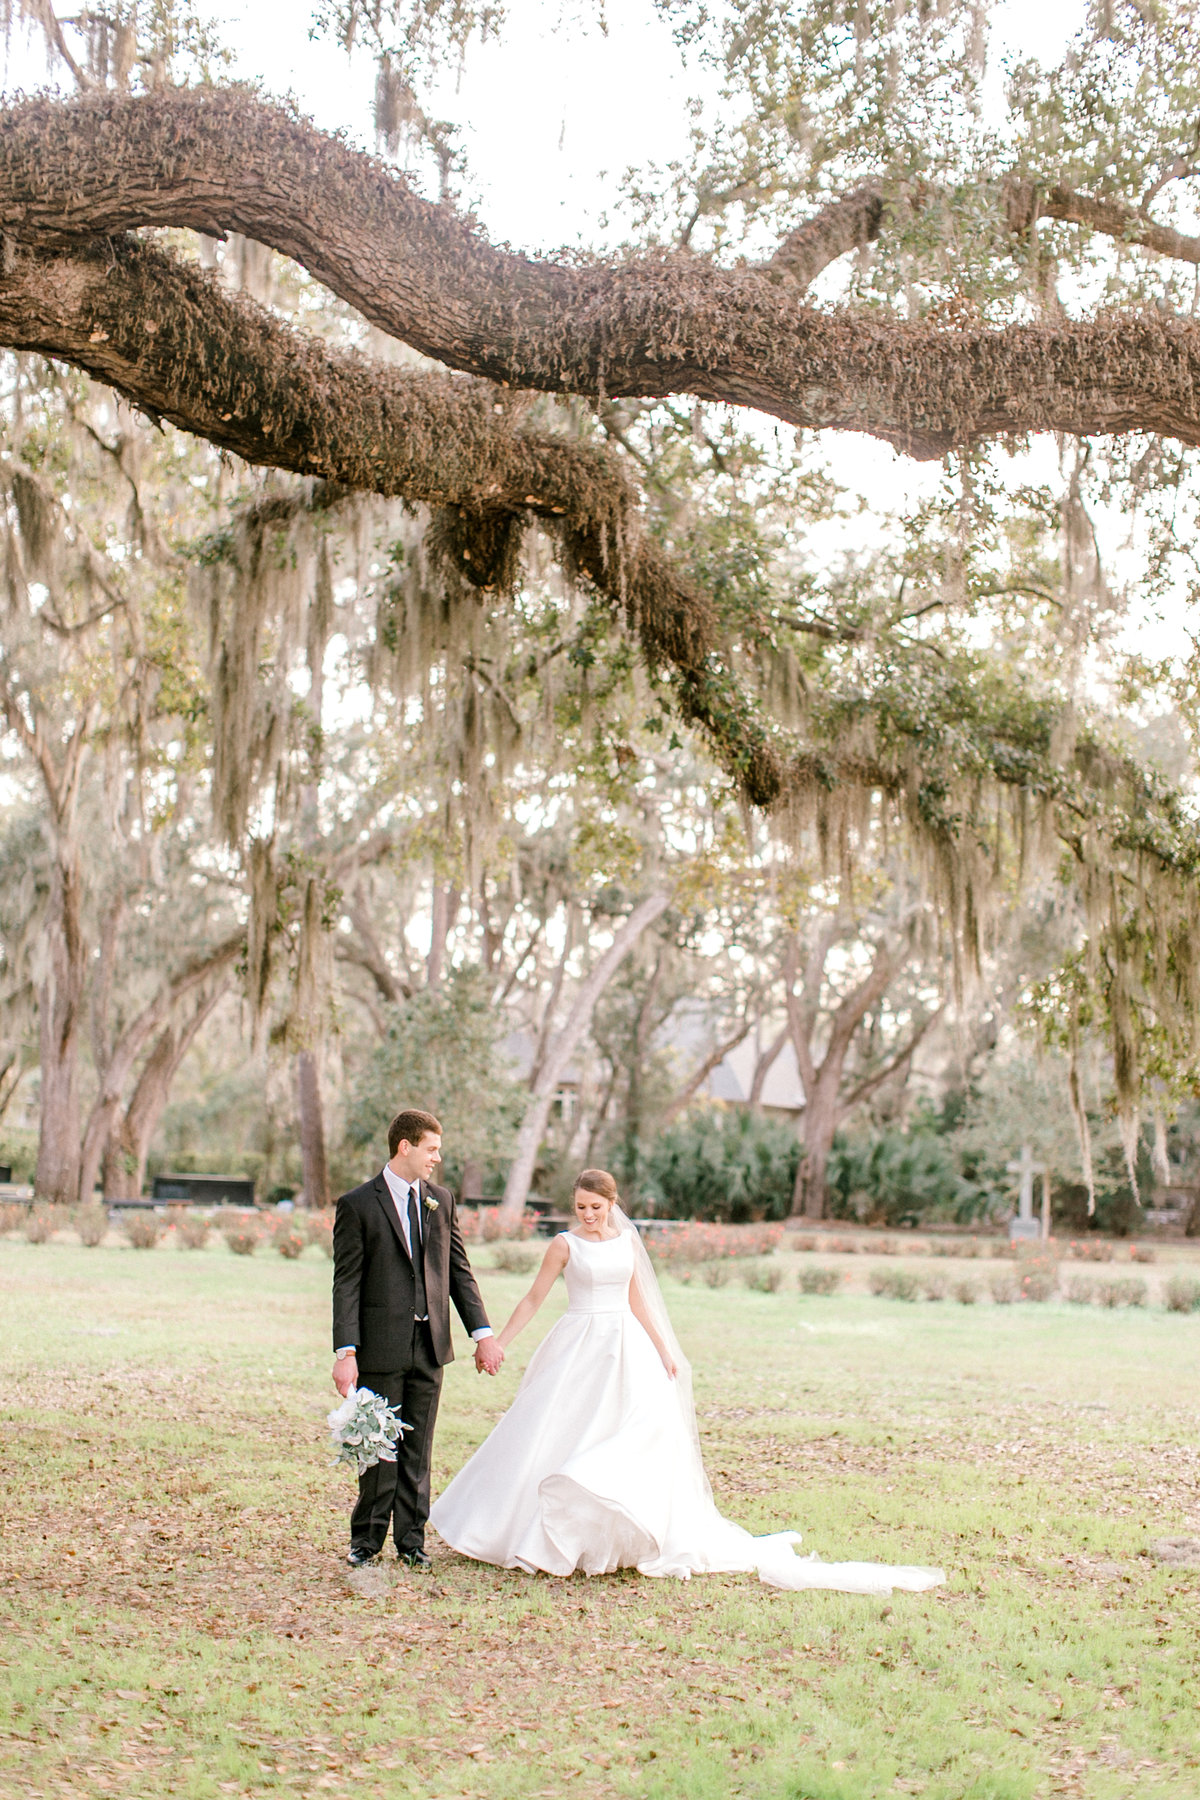 I am a wedding and lifestyle photographer based out of Athens, Georgia | Mary Catherine Echols Photography